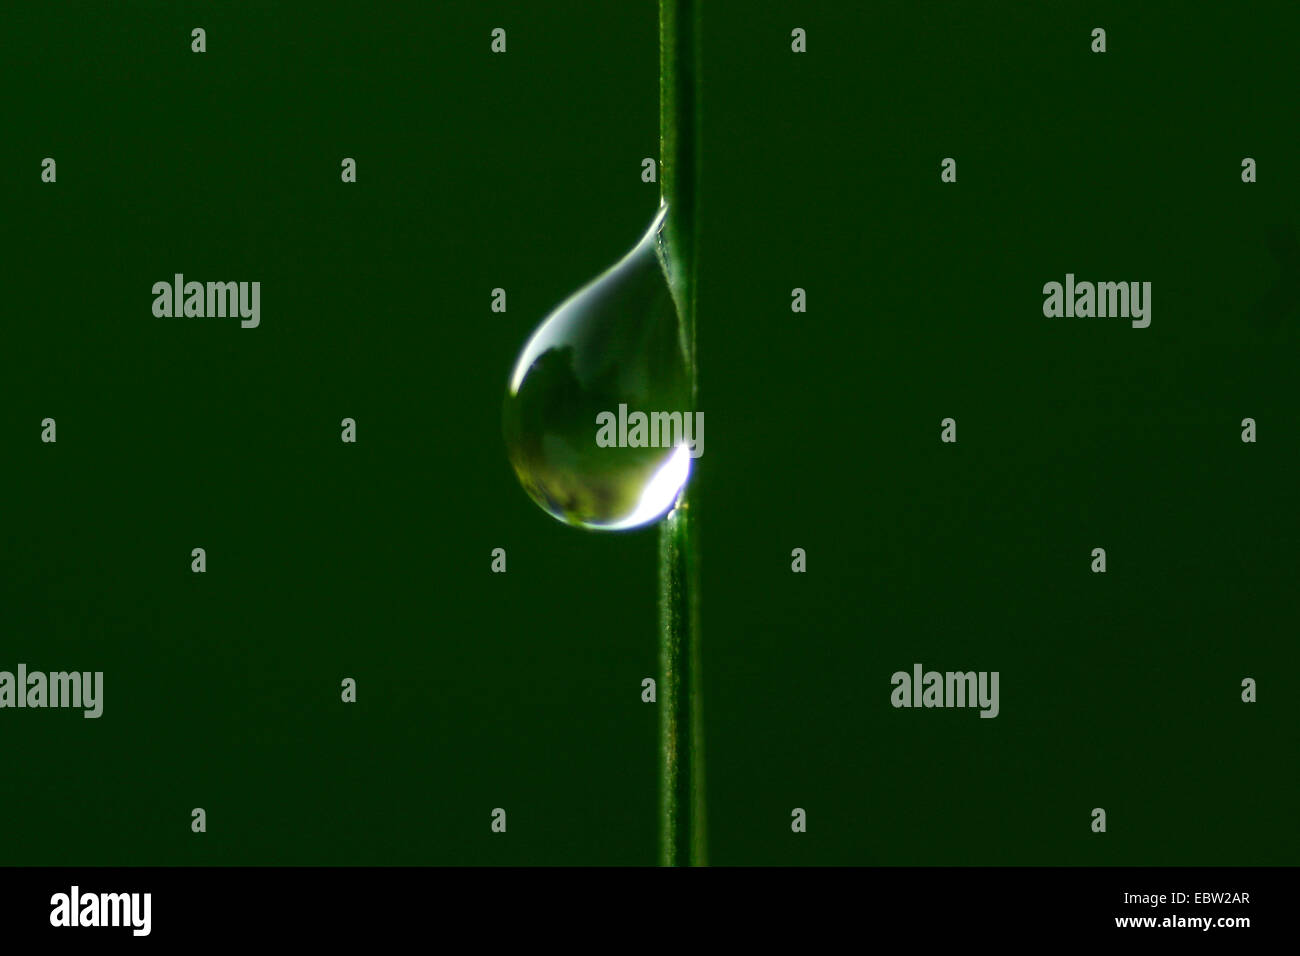 Water drop at a blade of grass - Stock Image